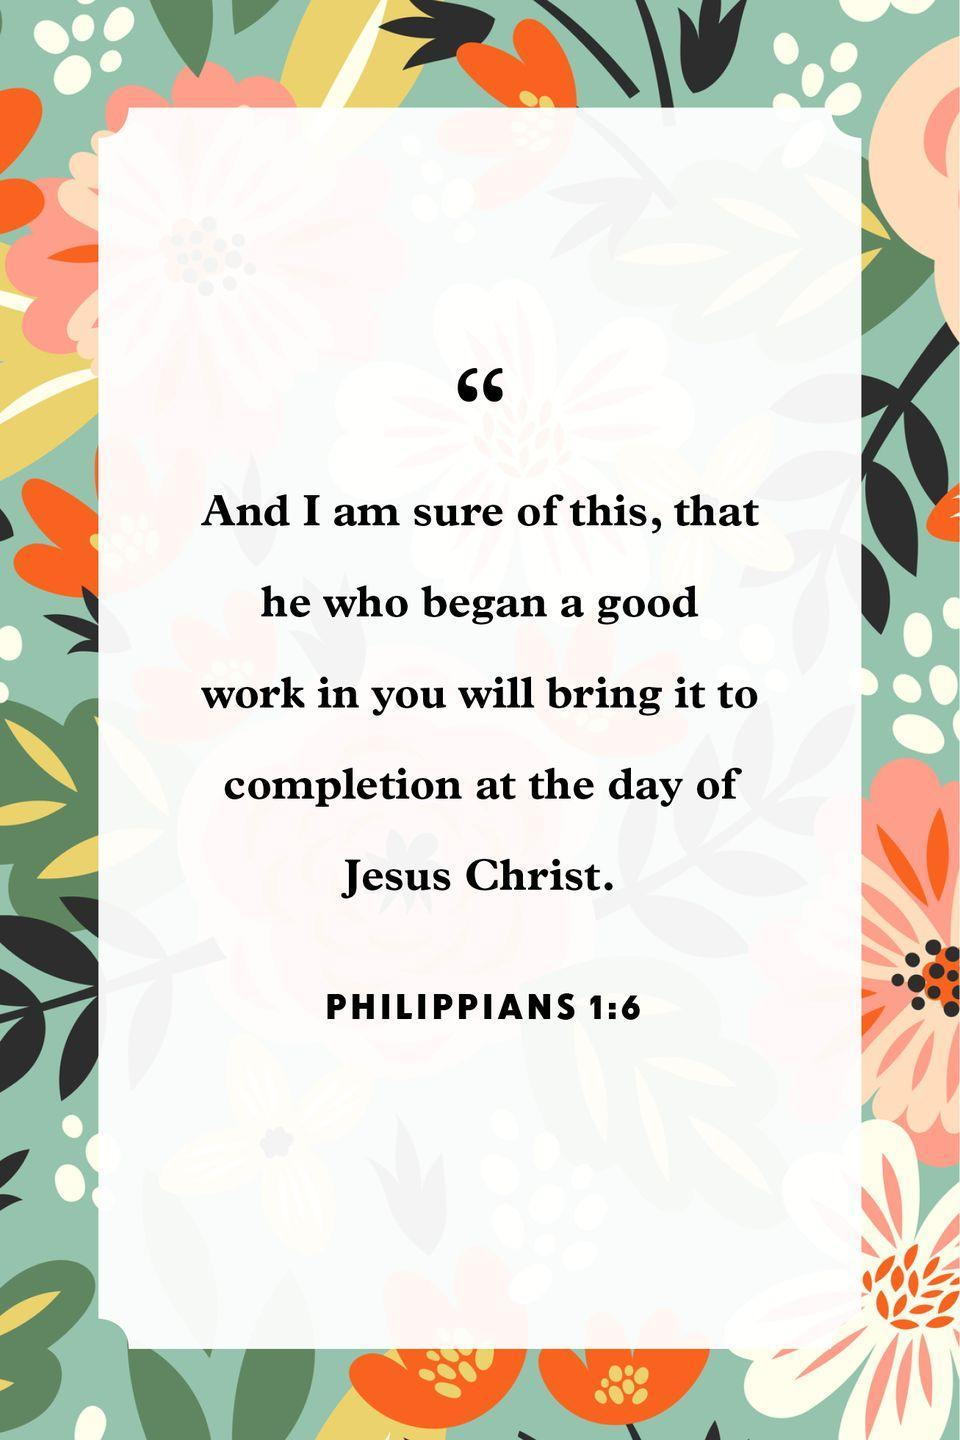 "<p>""And I am sure of this, that he who began a good work in you will bring it to completion at the day of Jesus Christ.""</p>"